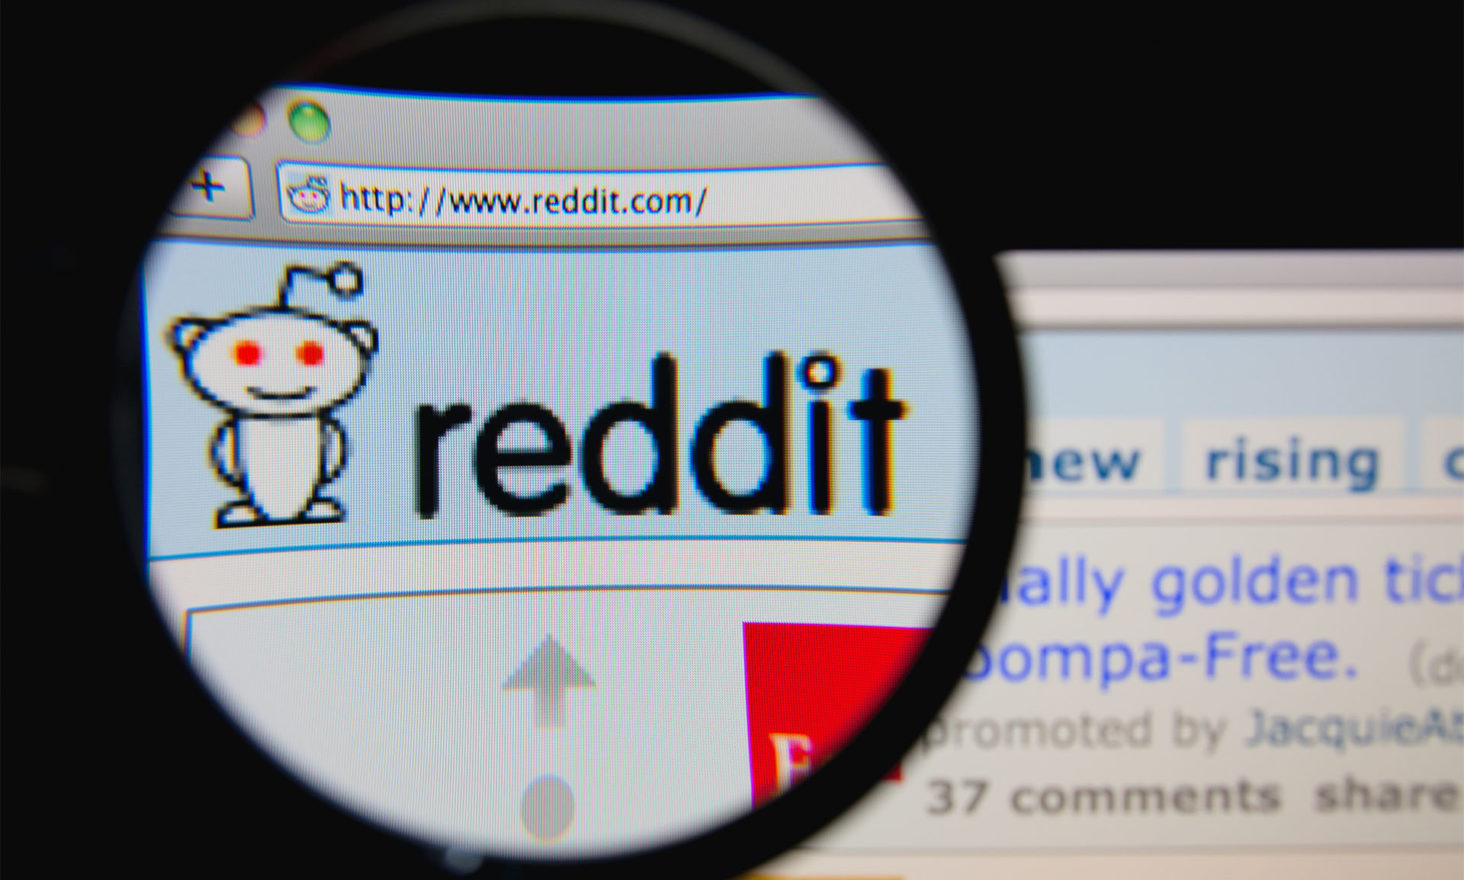 Highschool Dropout and Bitcoin Millionaire Hosts Reddit AMA